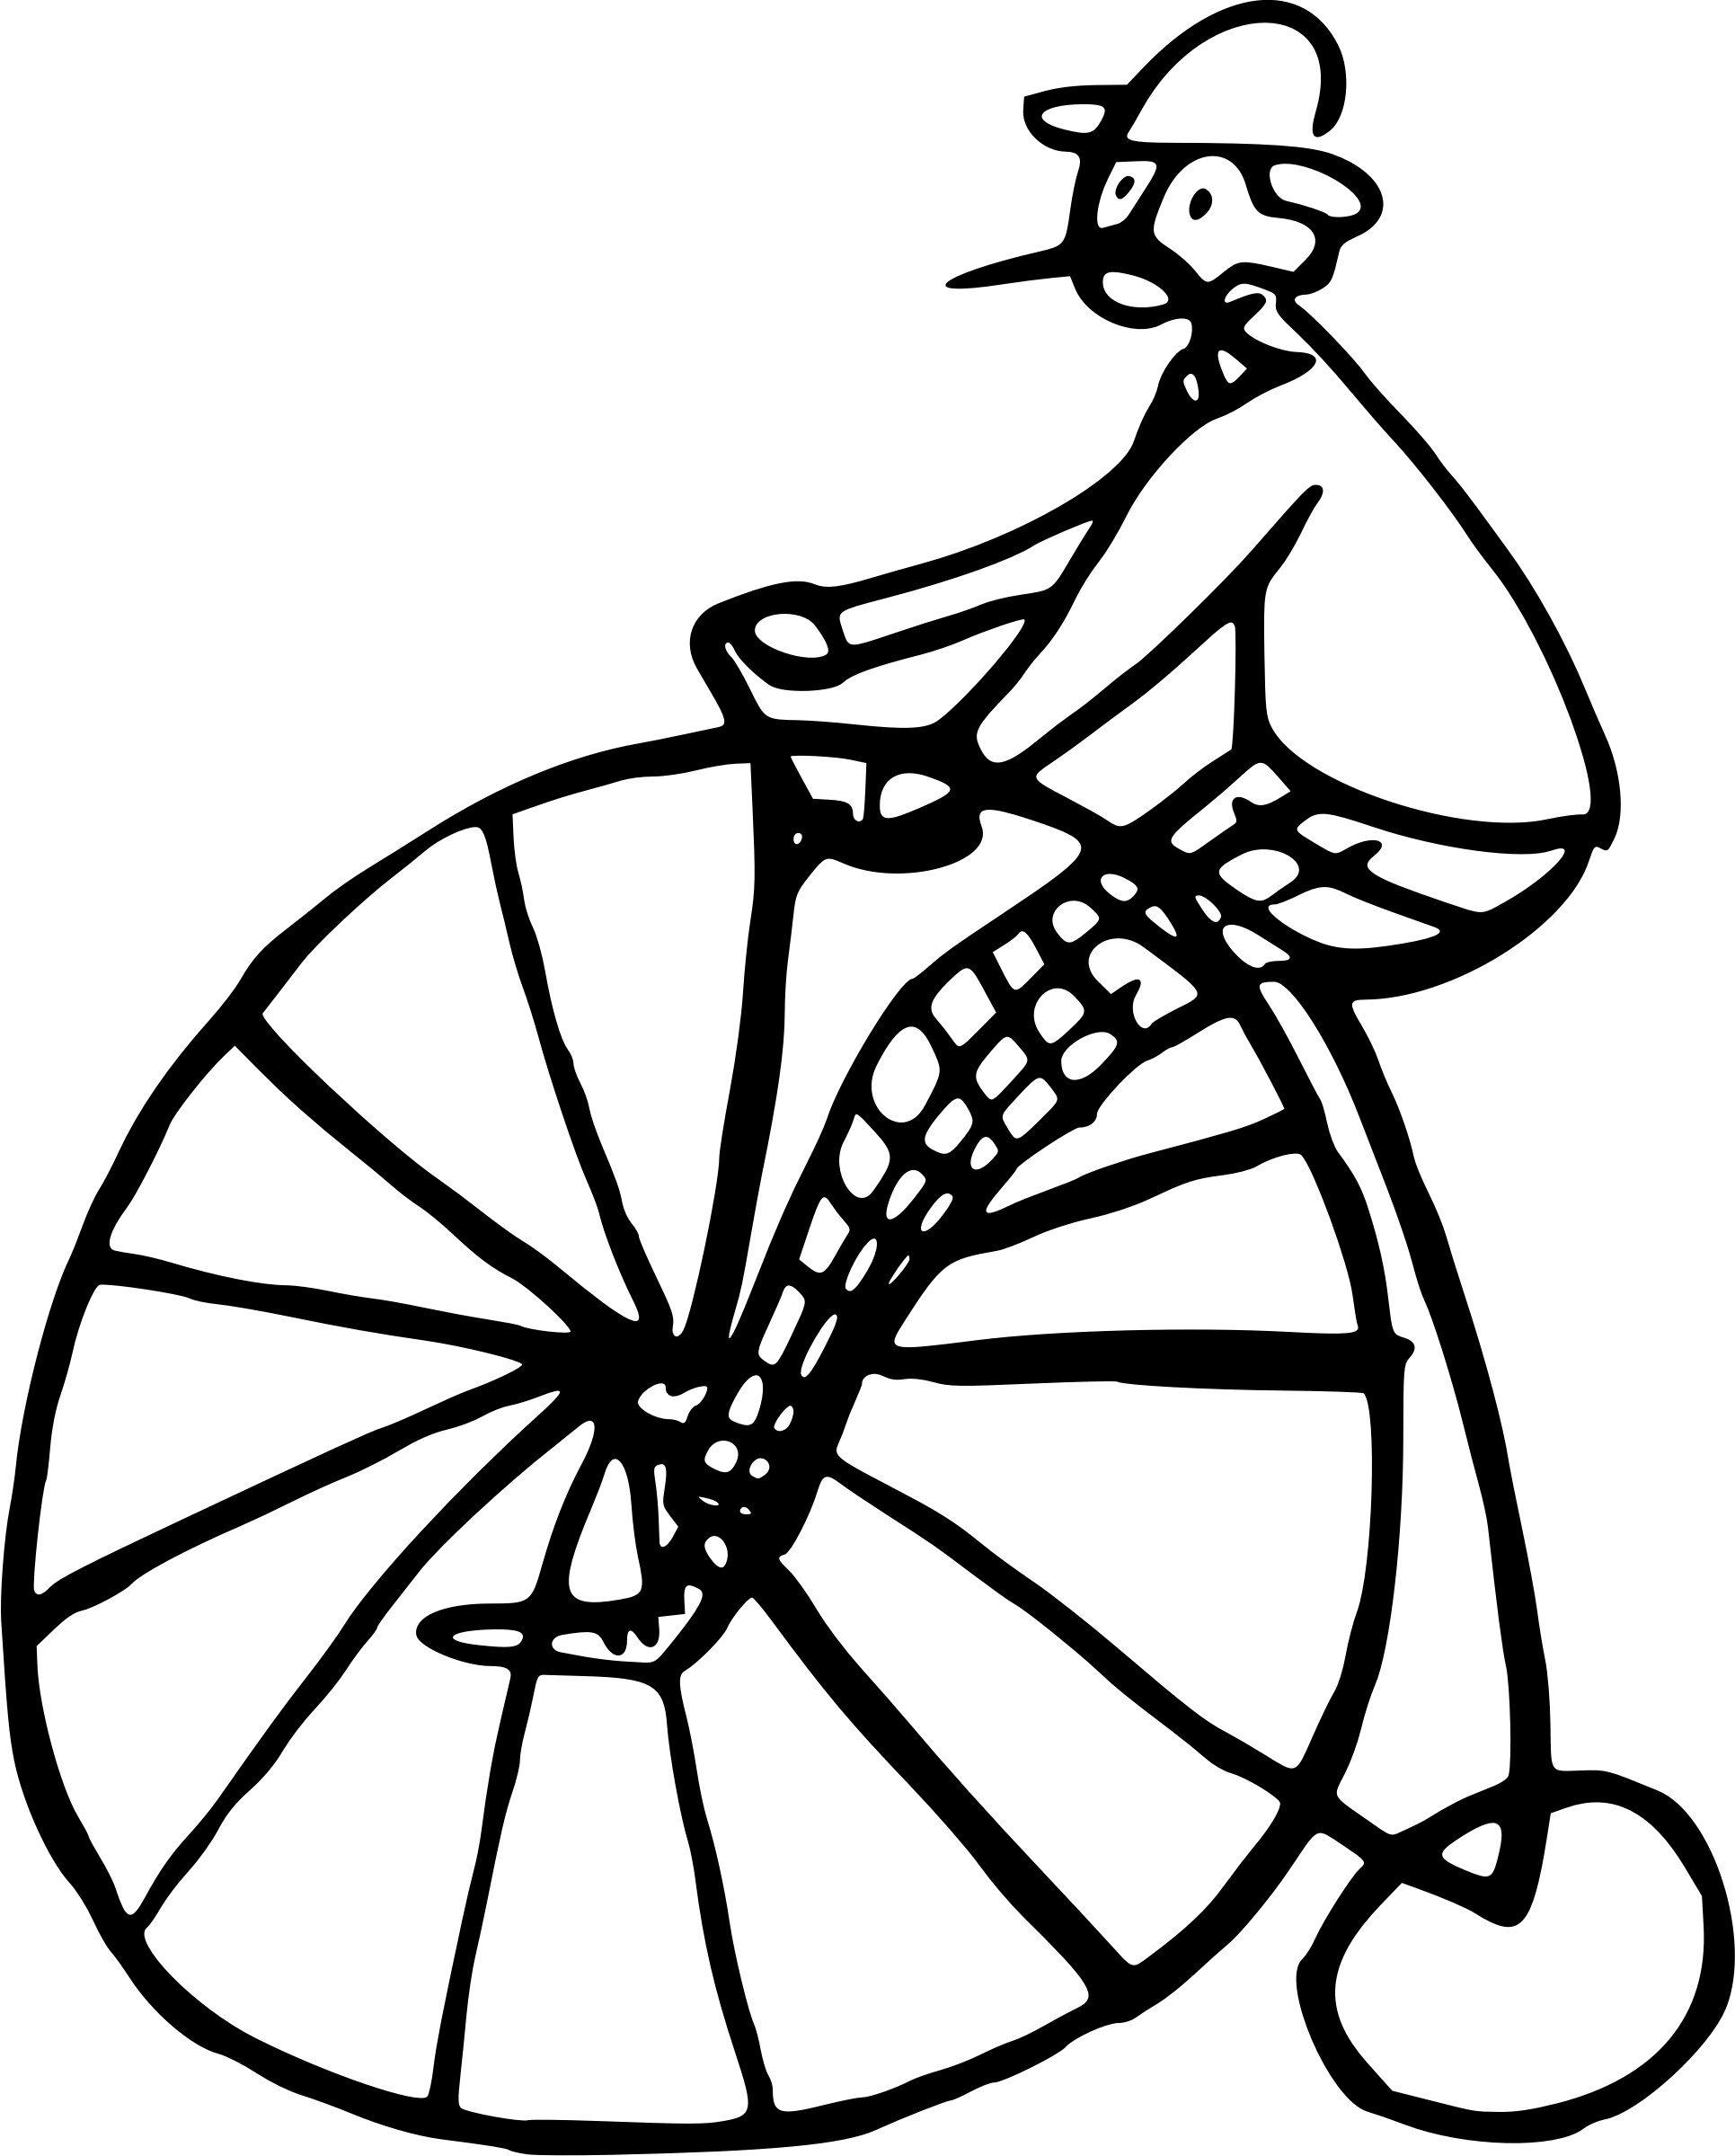 Man Riding On A Penny Farthing Cycle Vector Clipart Image